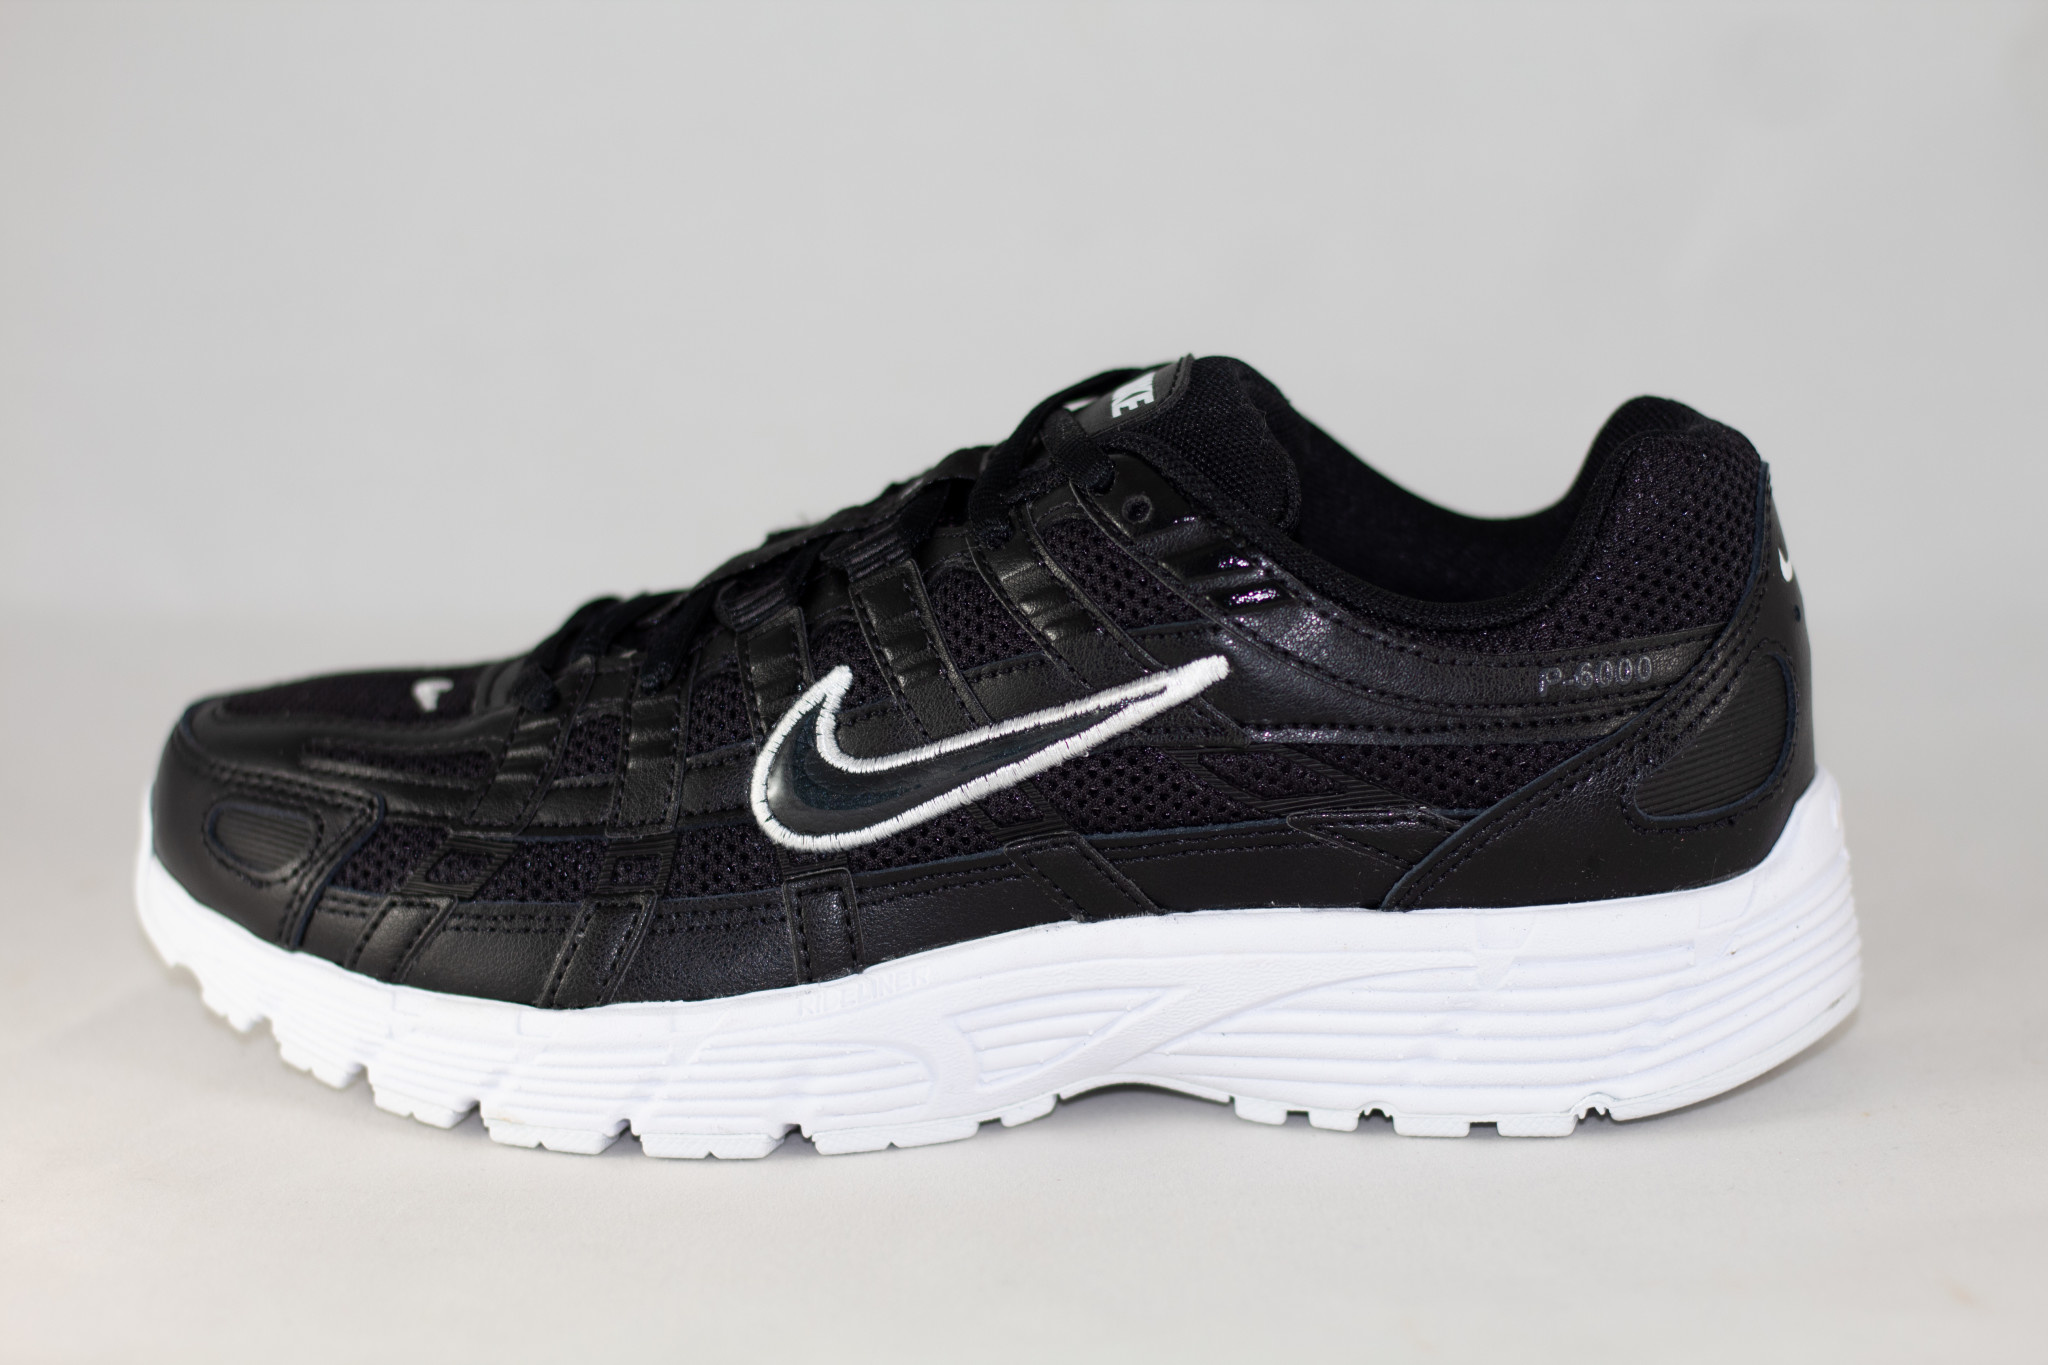 Nike W NIKE P-6000 Black/ Anthracite/ White